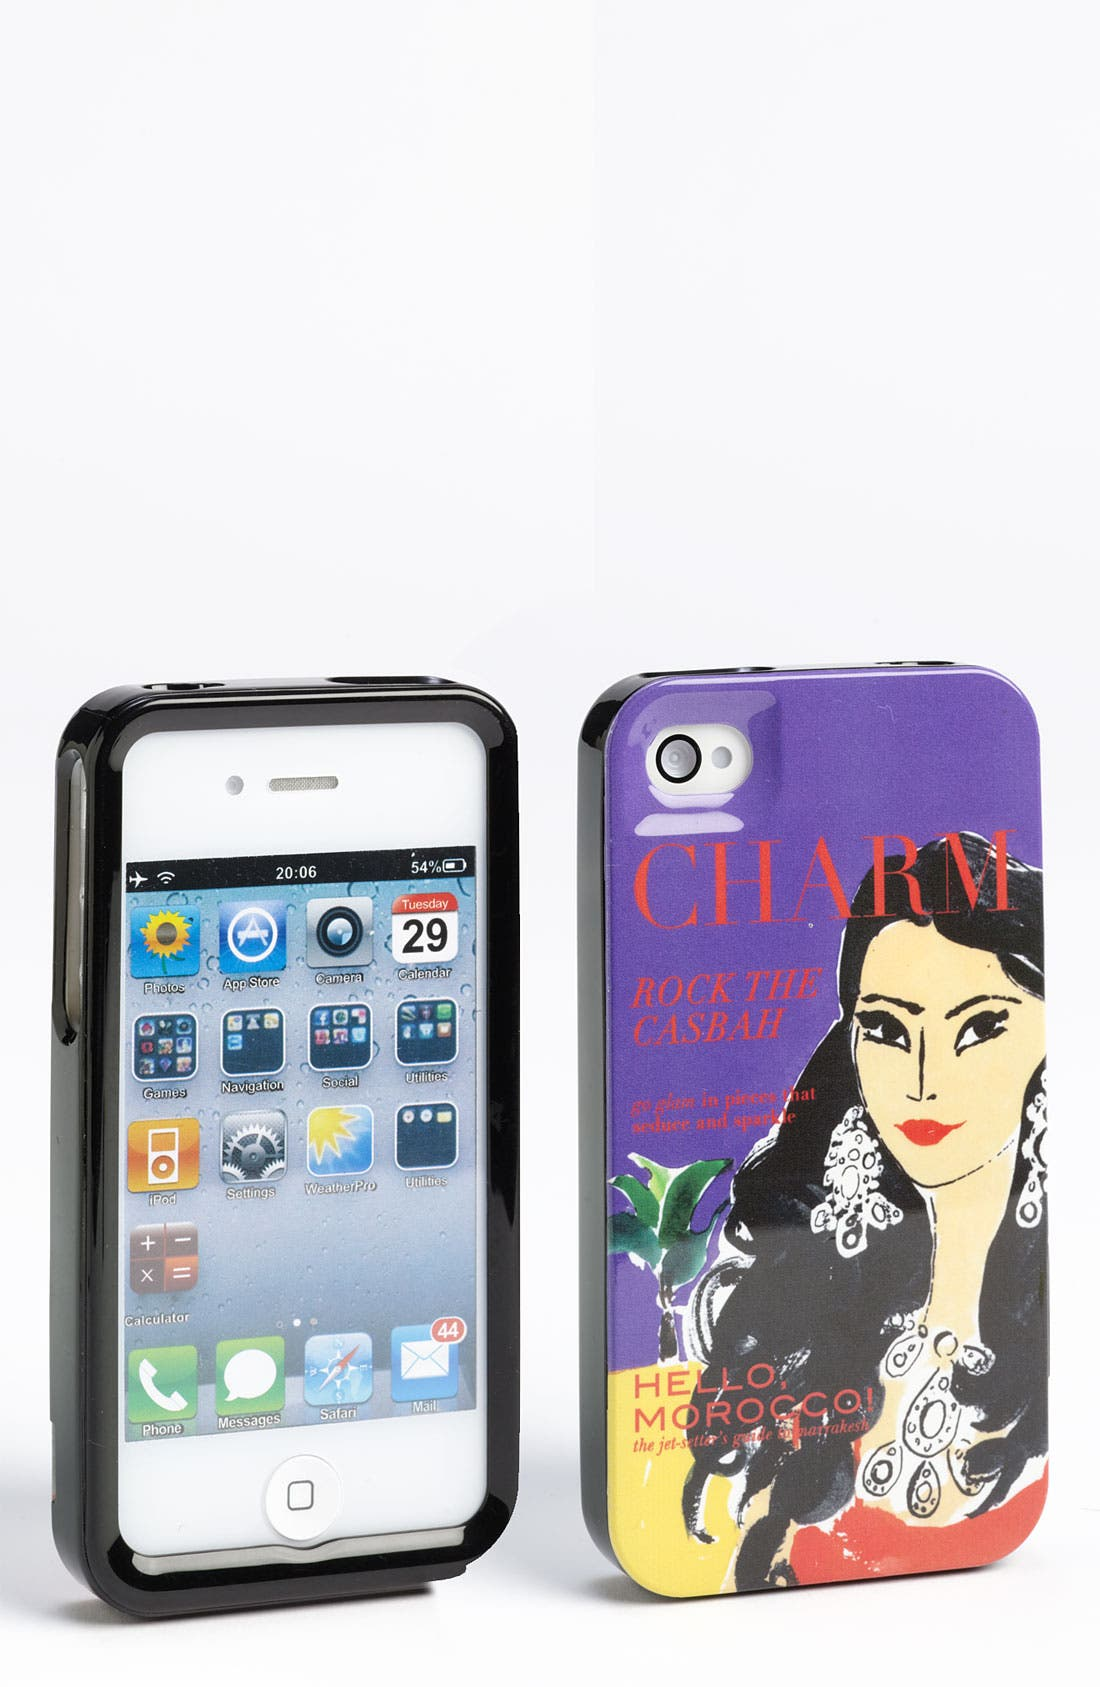 Alternate Image 1 Selected - kate spade new york 'charm' iPhone 4 & 4S case